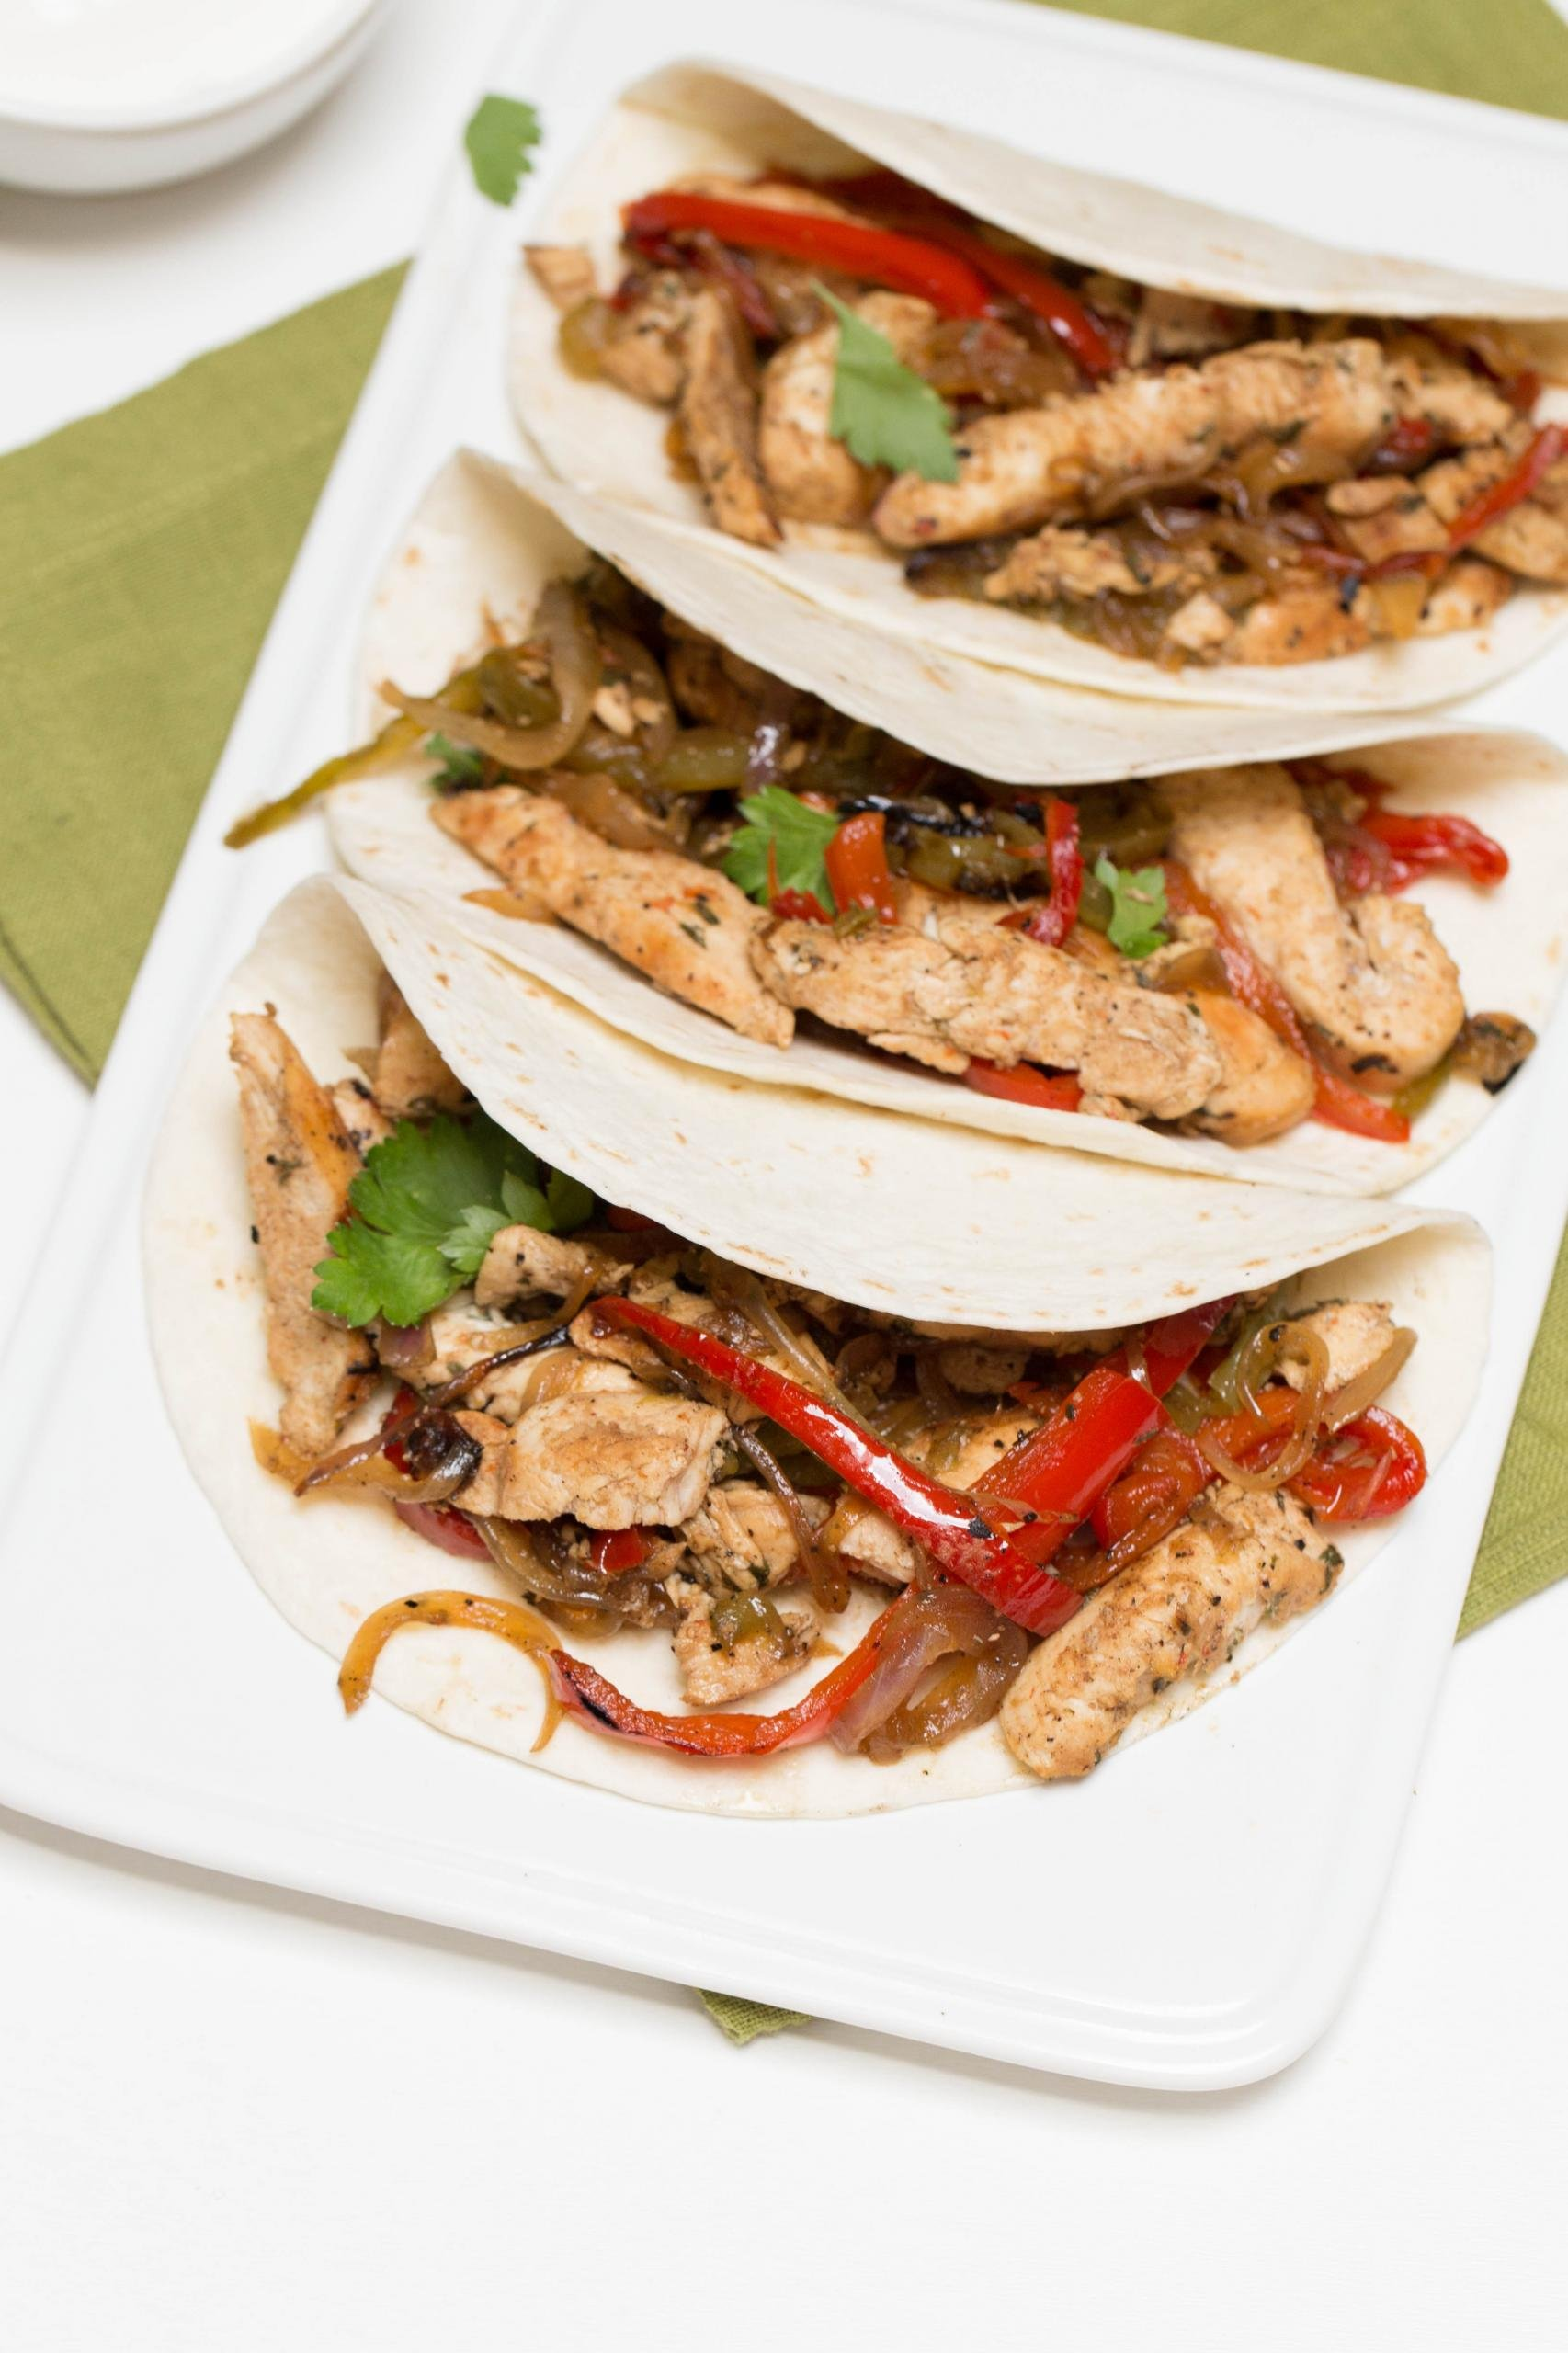 Chicken Fajitas tacos in a row on a plate